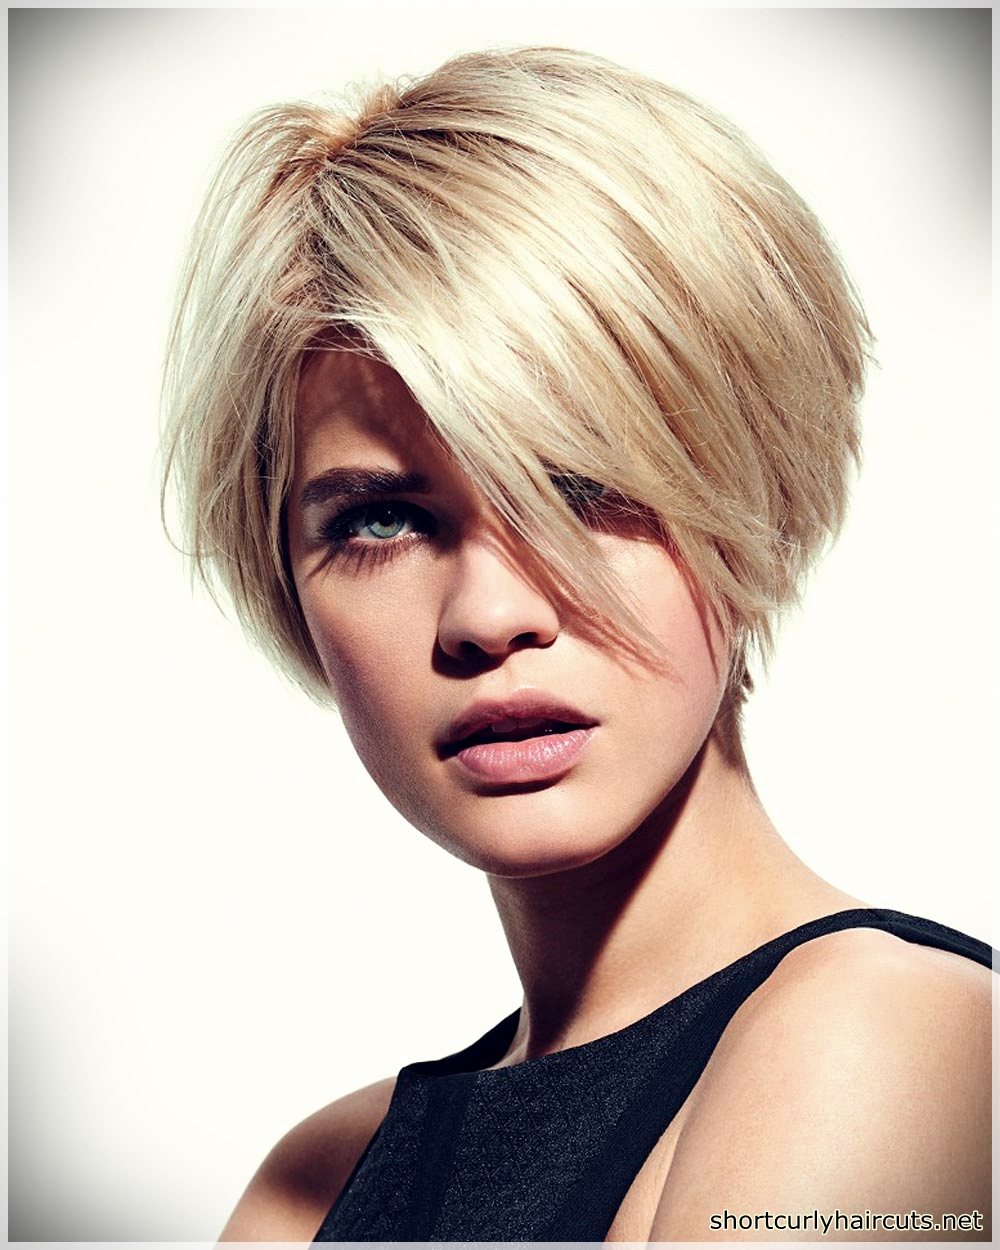 edgy short hairstyles and cuts 9 - Edgy Short Hairstyles and Cuts